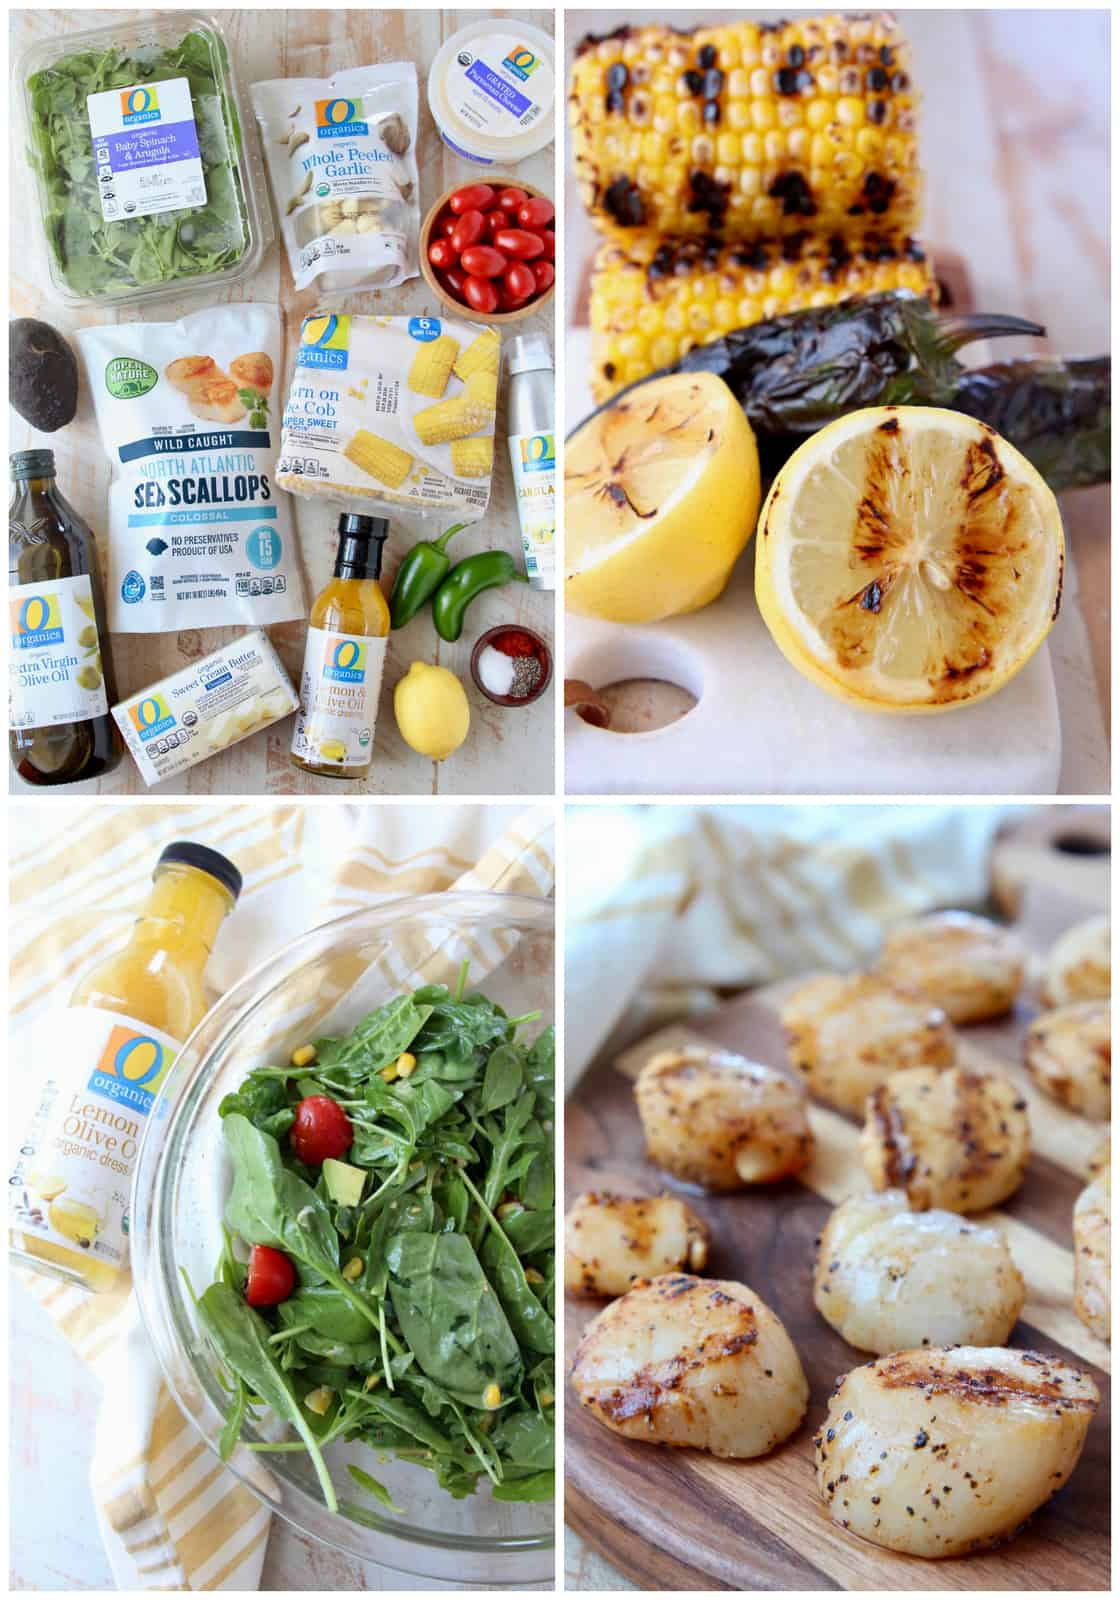 Collage of images showing the ingredients and how to make grilled scallops with a salad